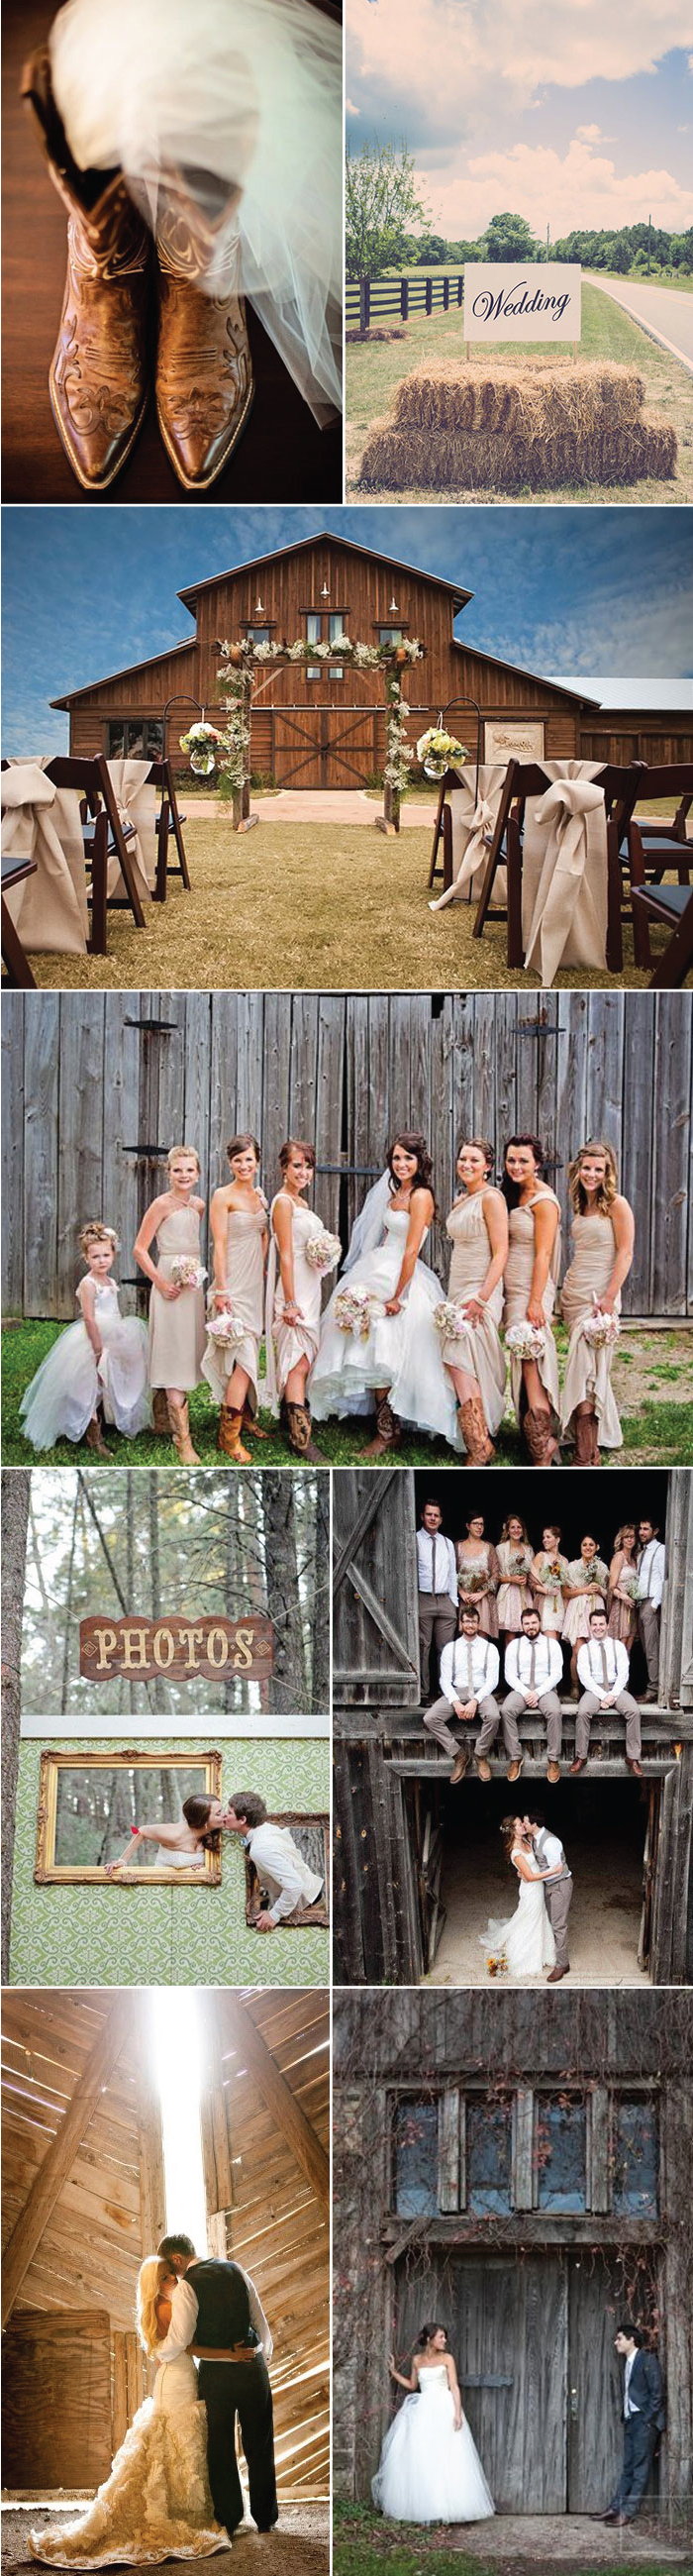 Inspiration Ideas for Barn Weddings